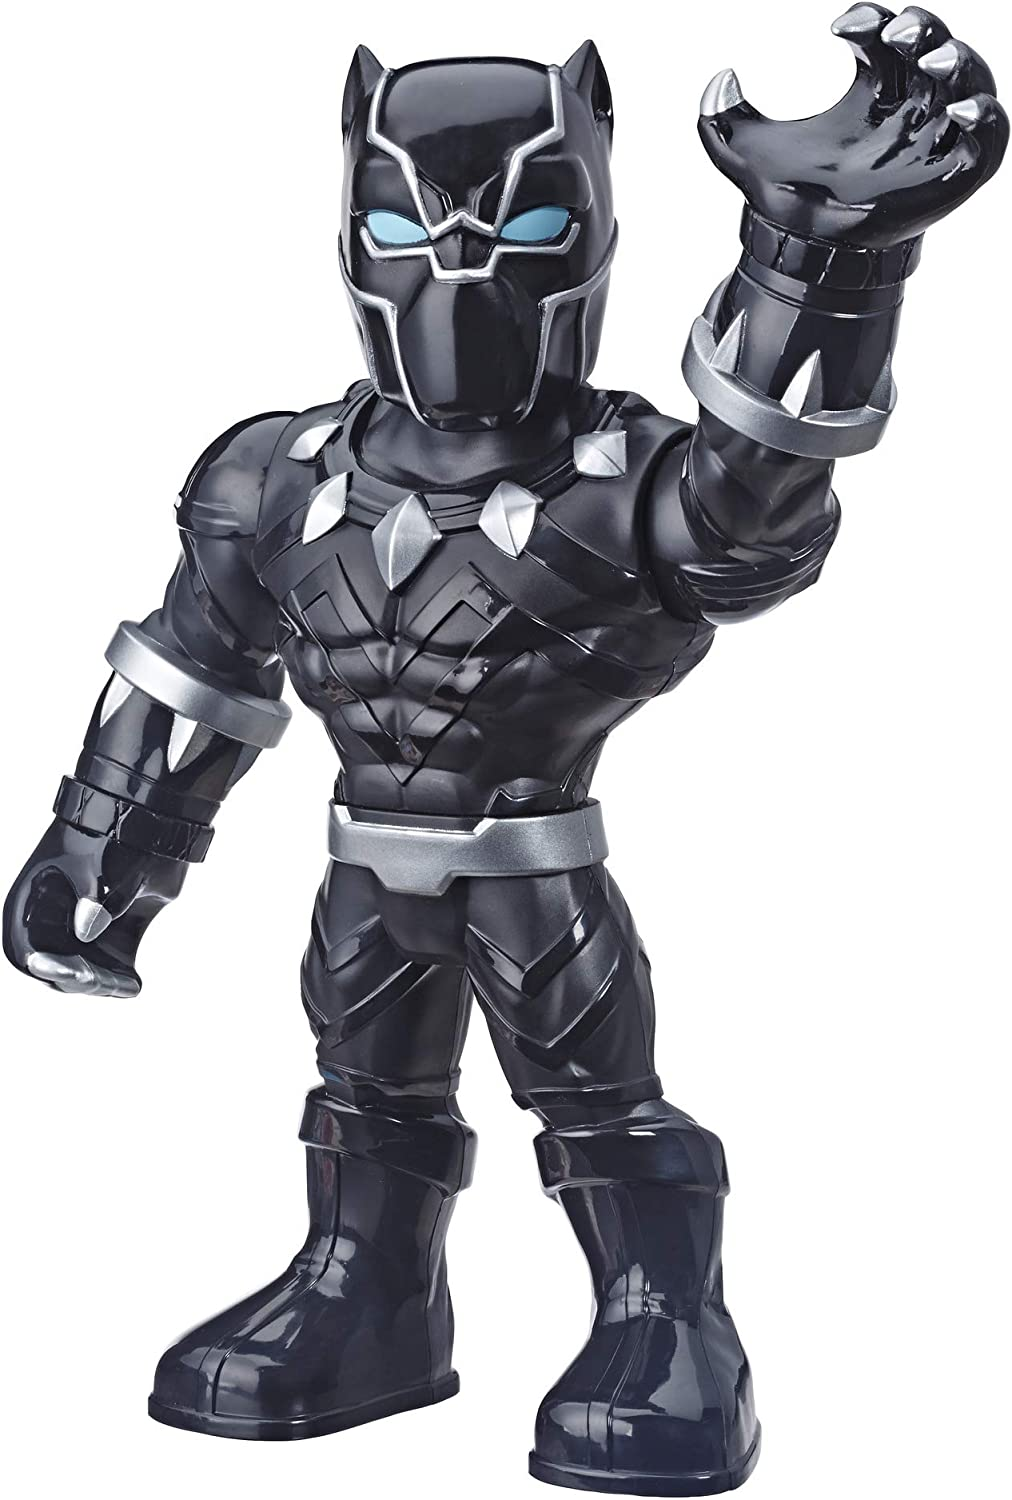 """Playskool Heroes Marvel Super Hero Adventures Mega Mighties Black Panther Collectible 10"""" Action Figure, Toys for Kids Ages 3 & Up"""